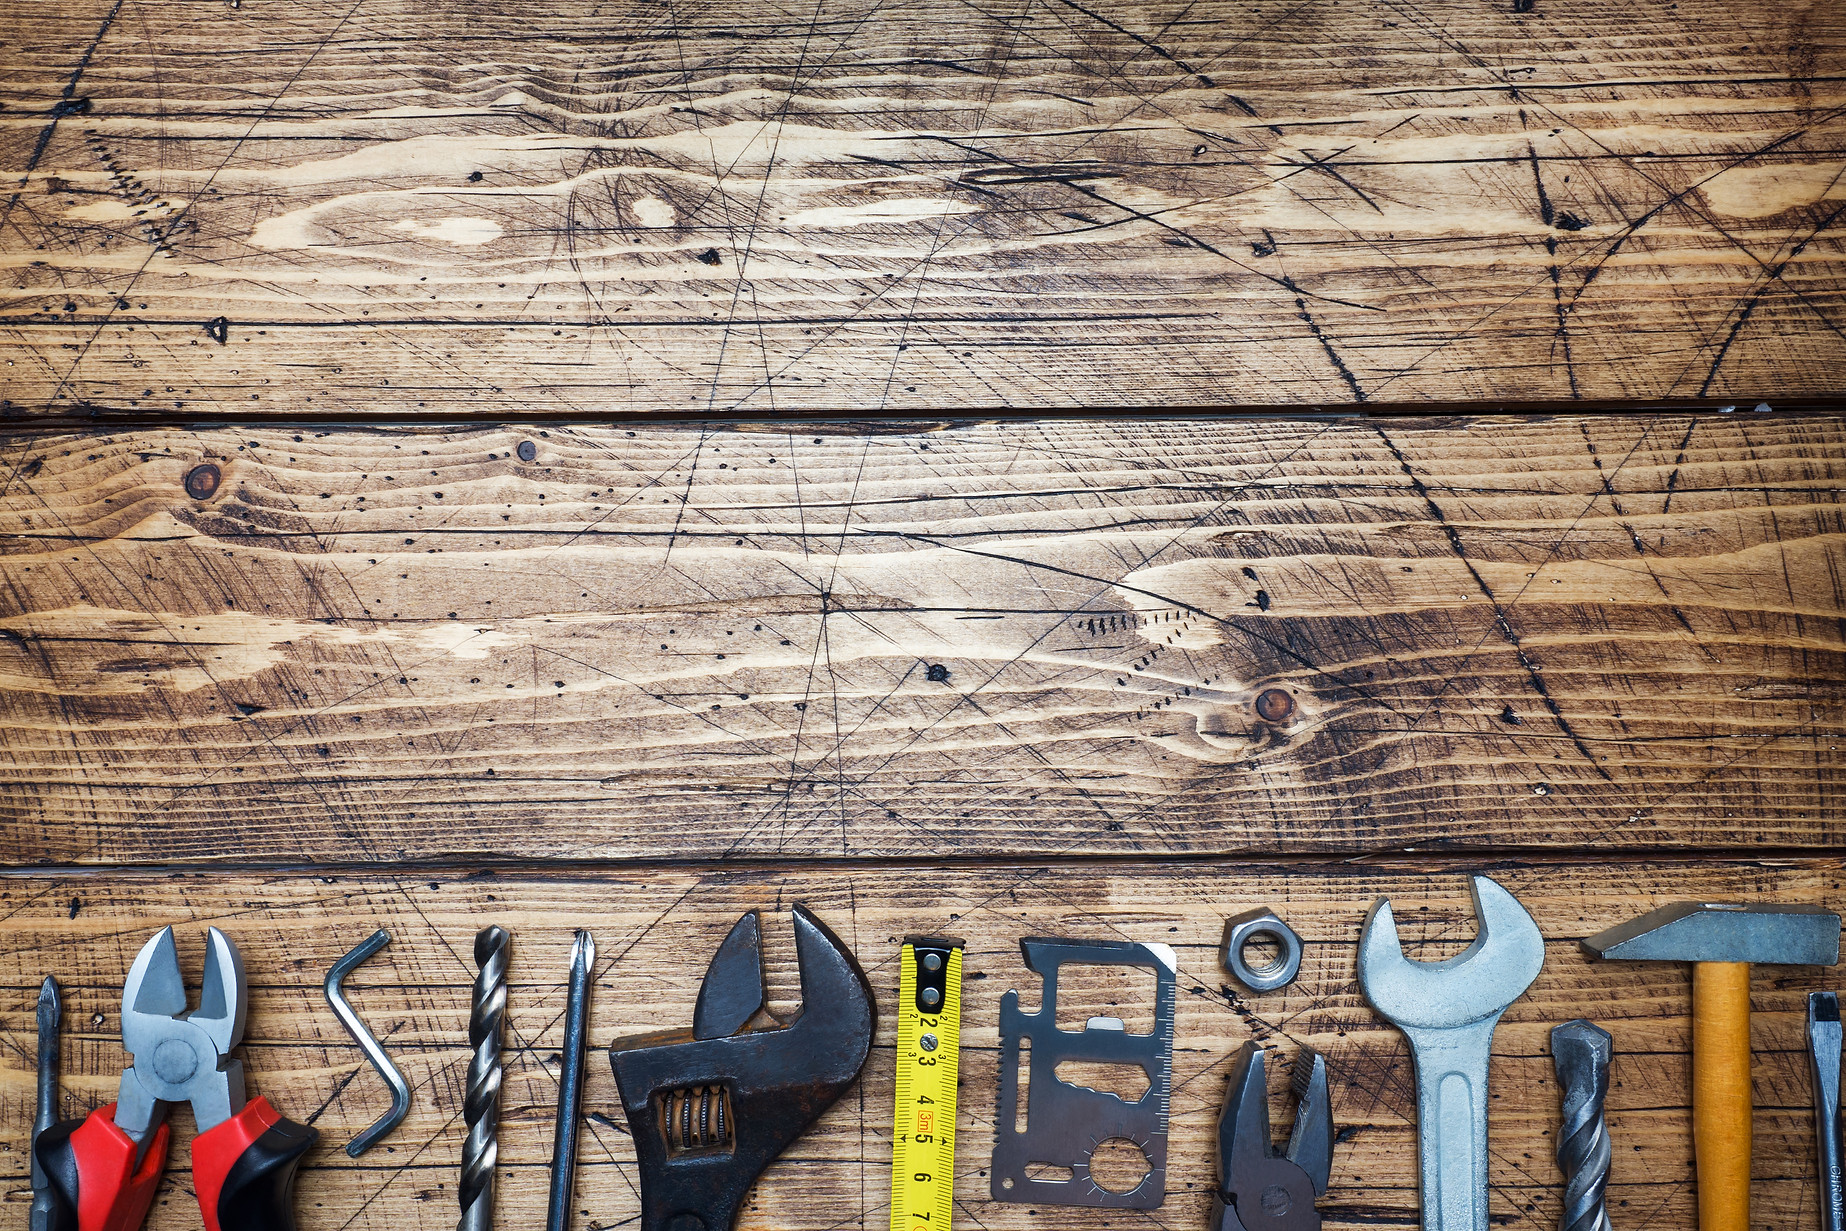 set-of-different-repair-tools-on-wooden-